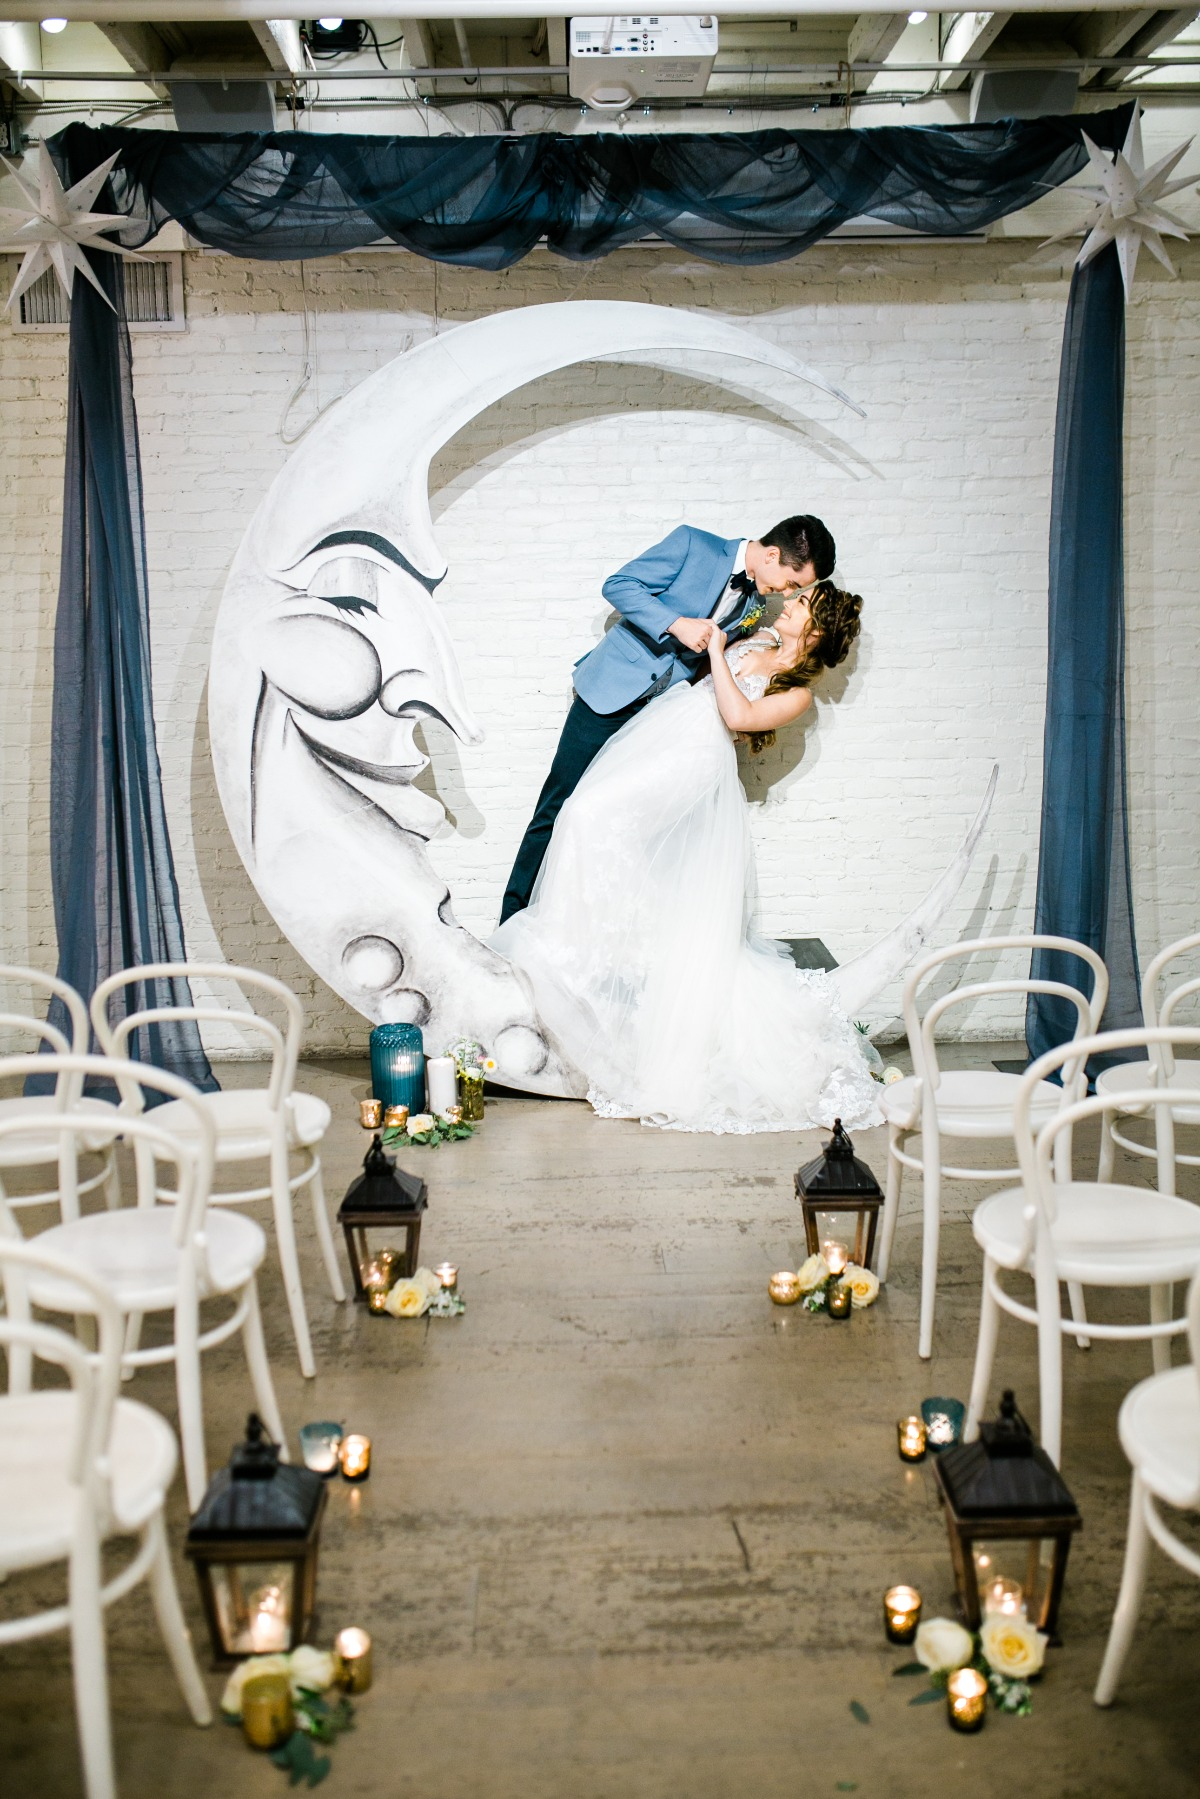 Cute Over the Moon wedding ideas